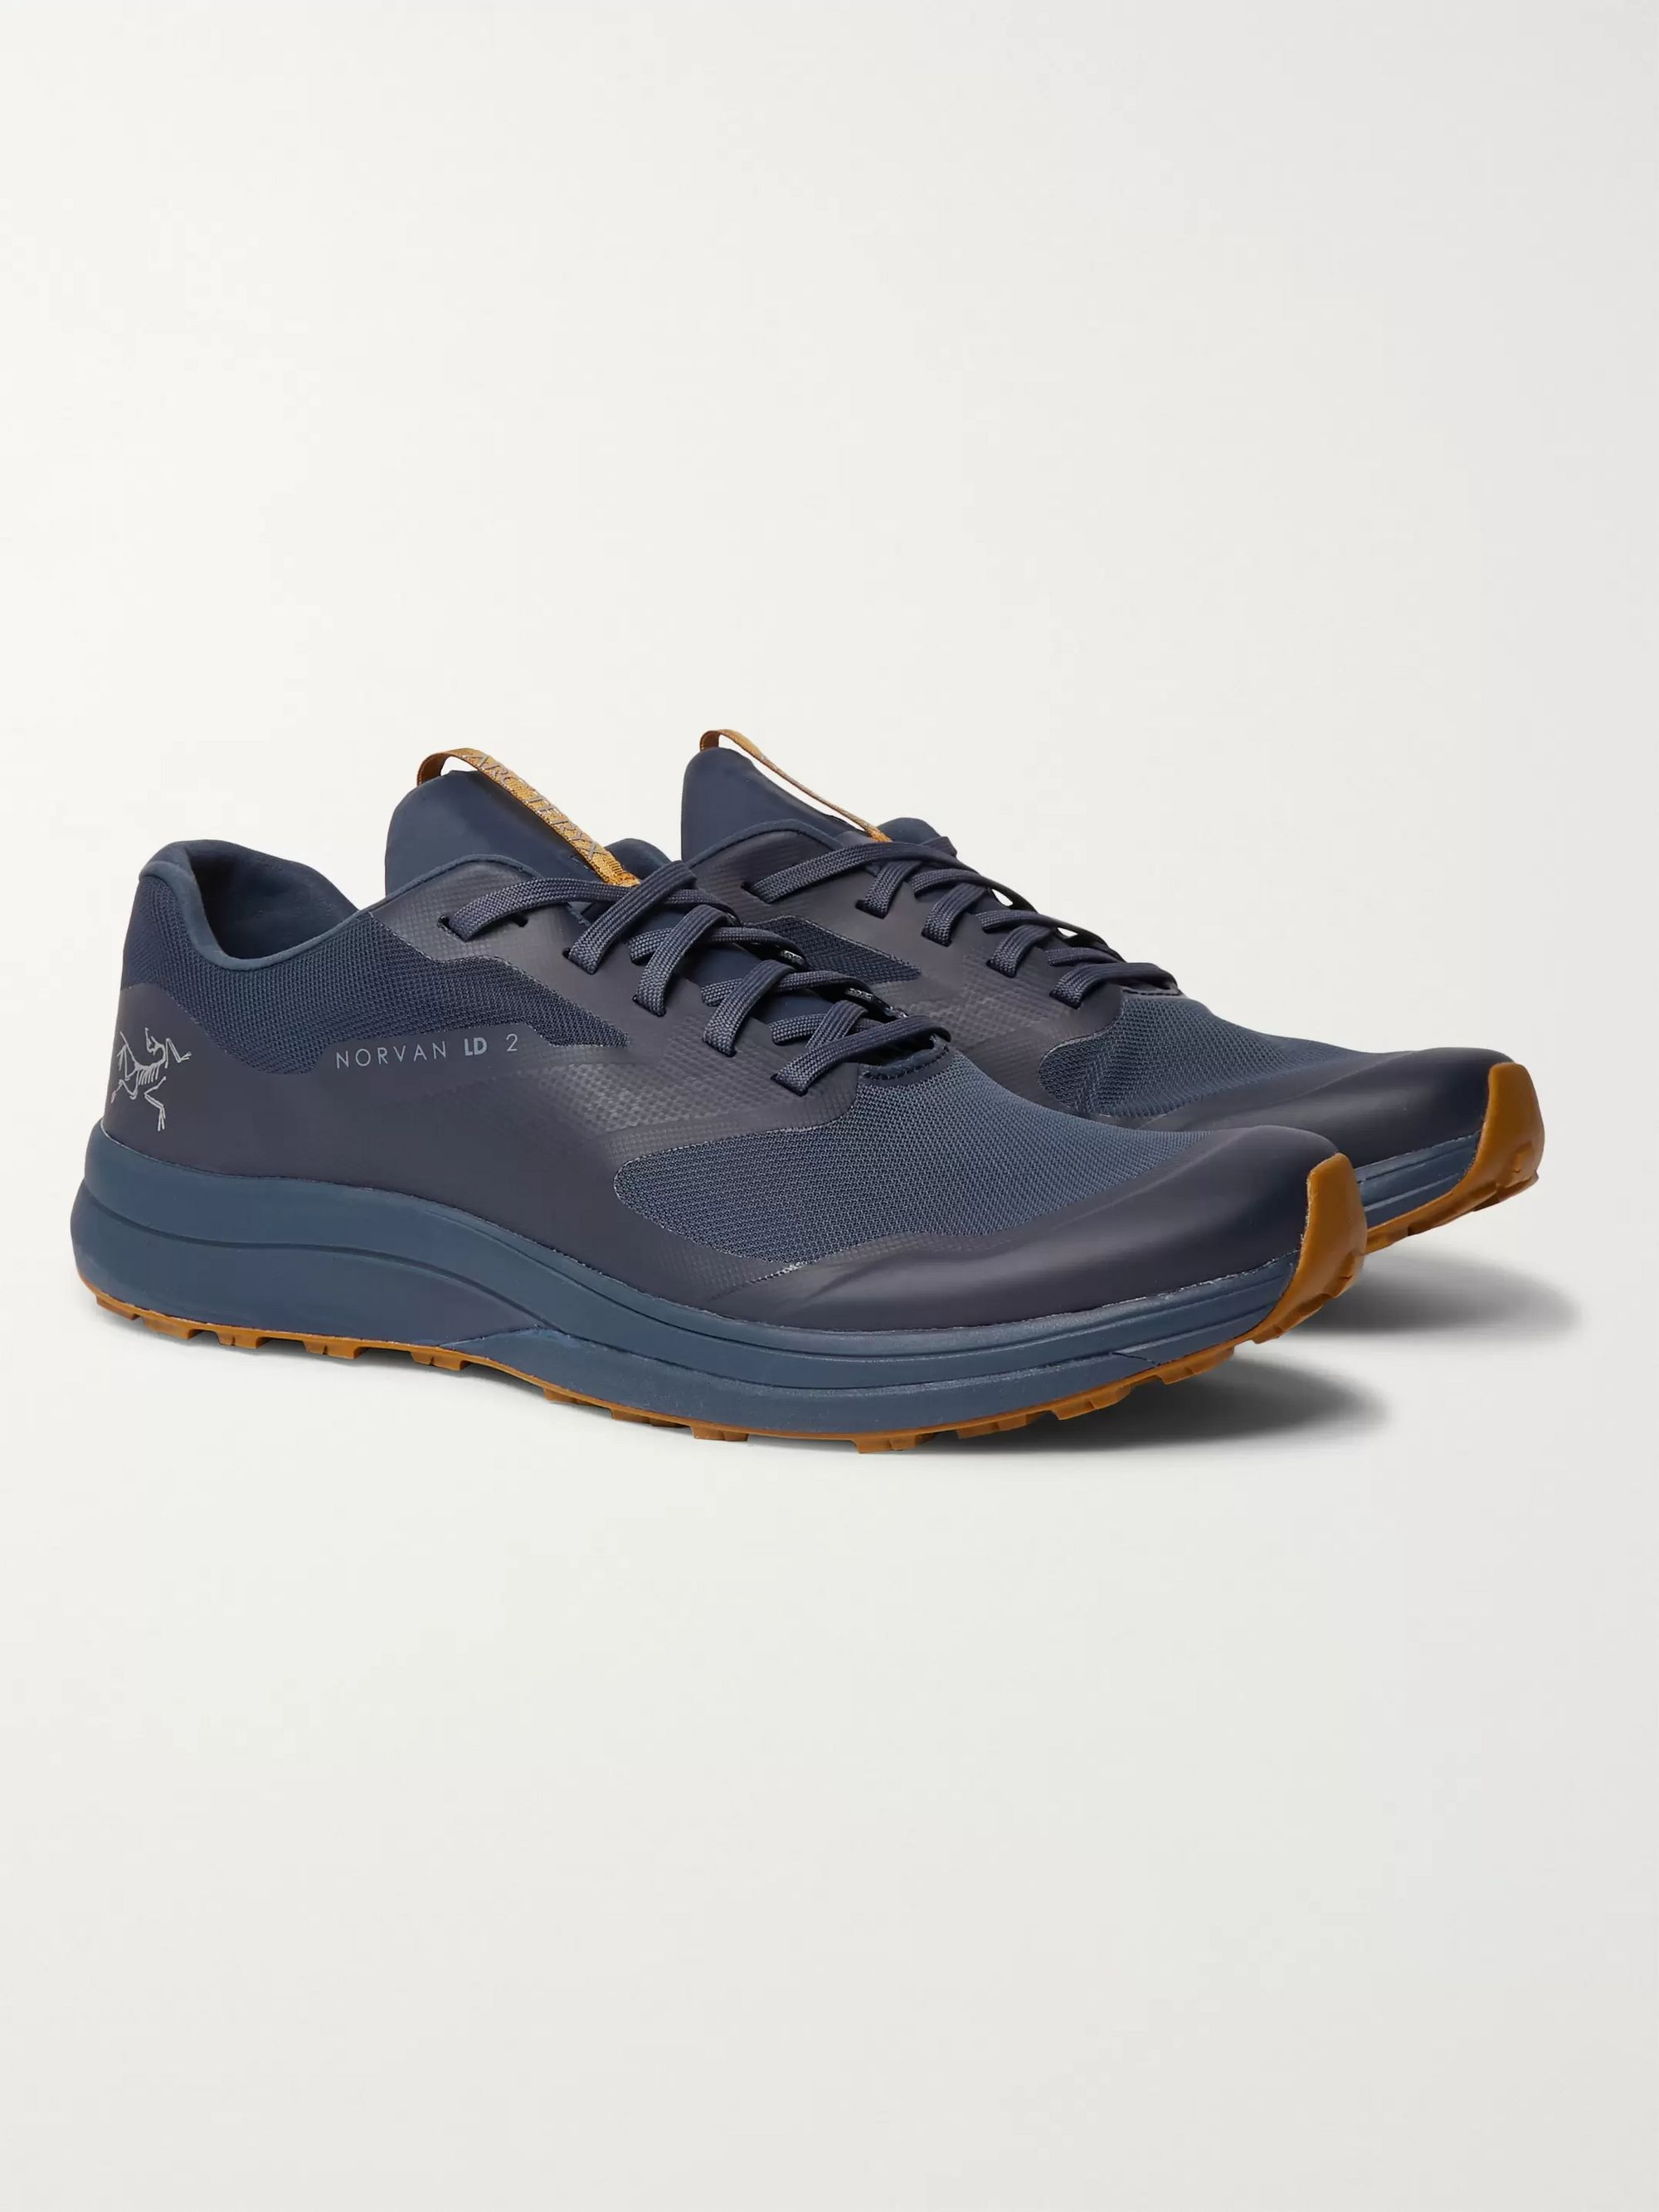 Arc'teryx Norvan LD 2 GORE-TEX and Mesh Running Sneakers